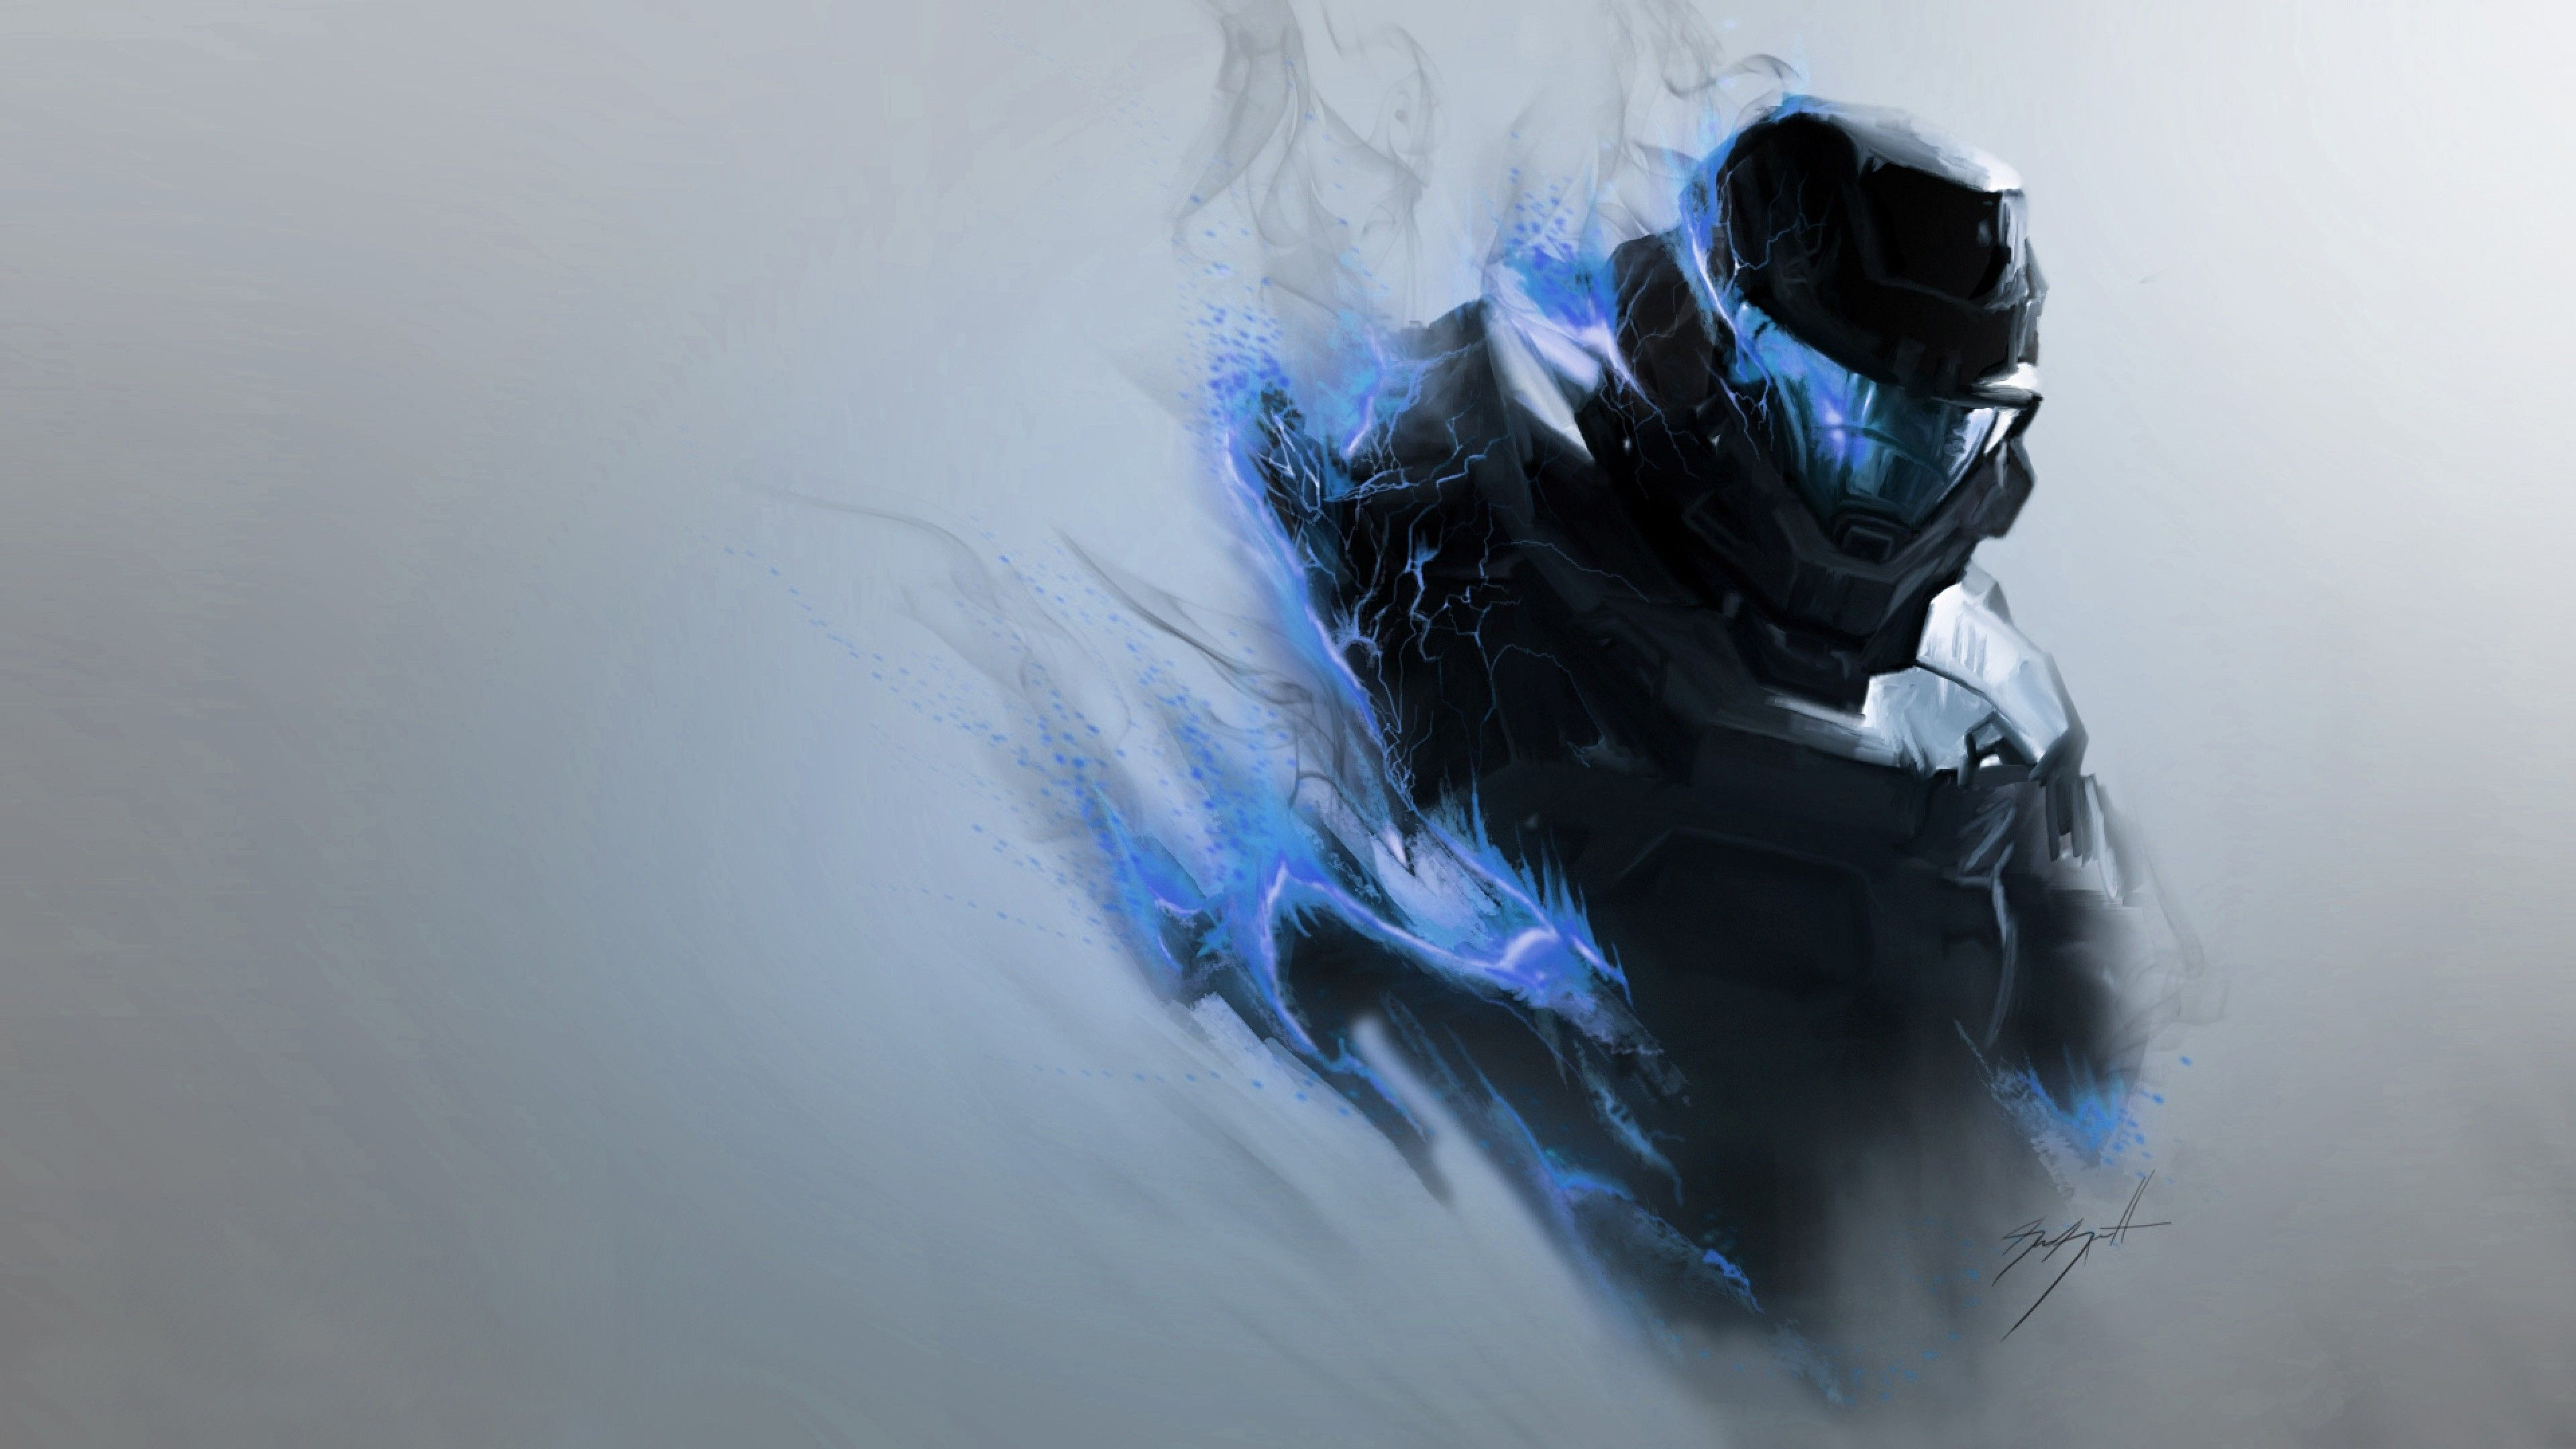 3840x2160 Wallpaper 3840x2160 Halo Smoke Armor Soldier